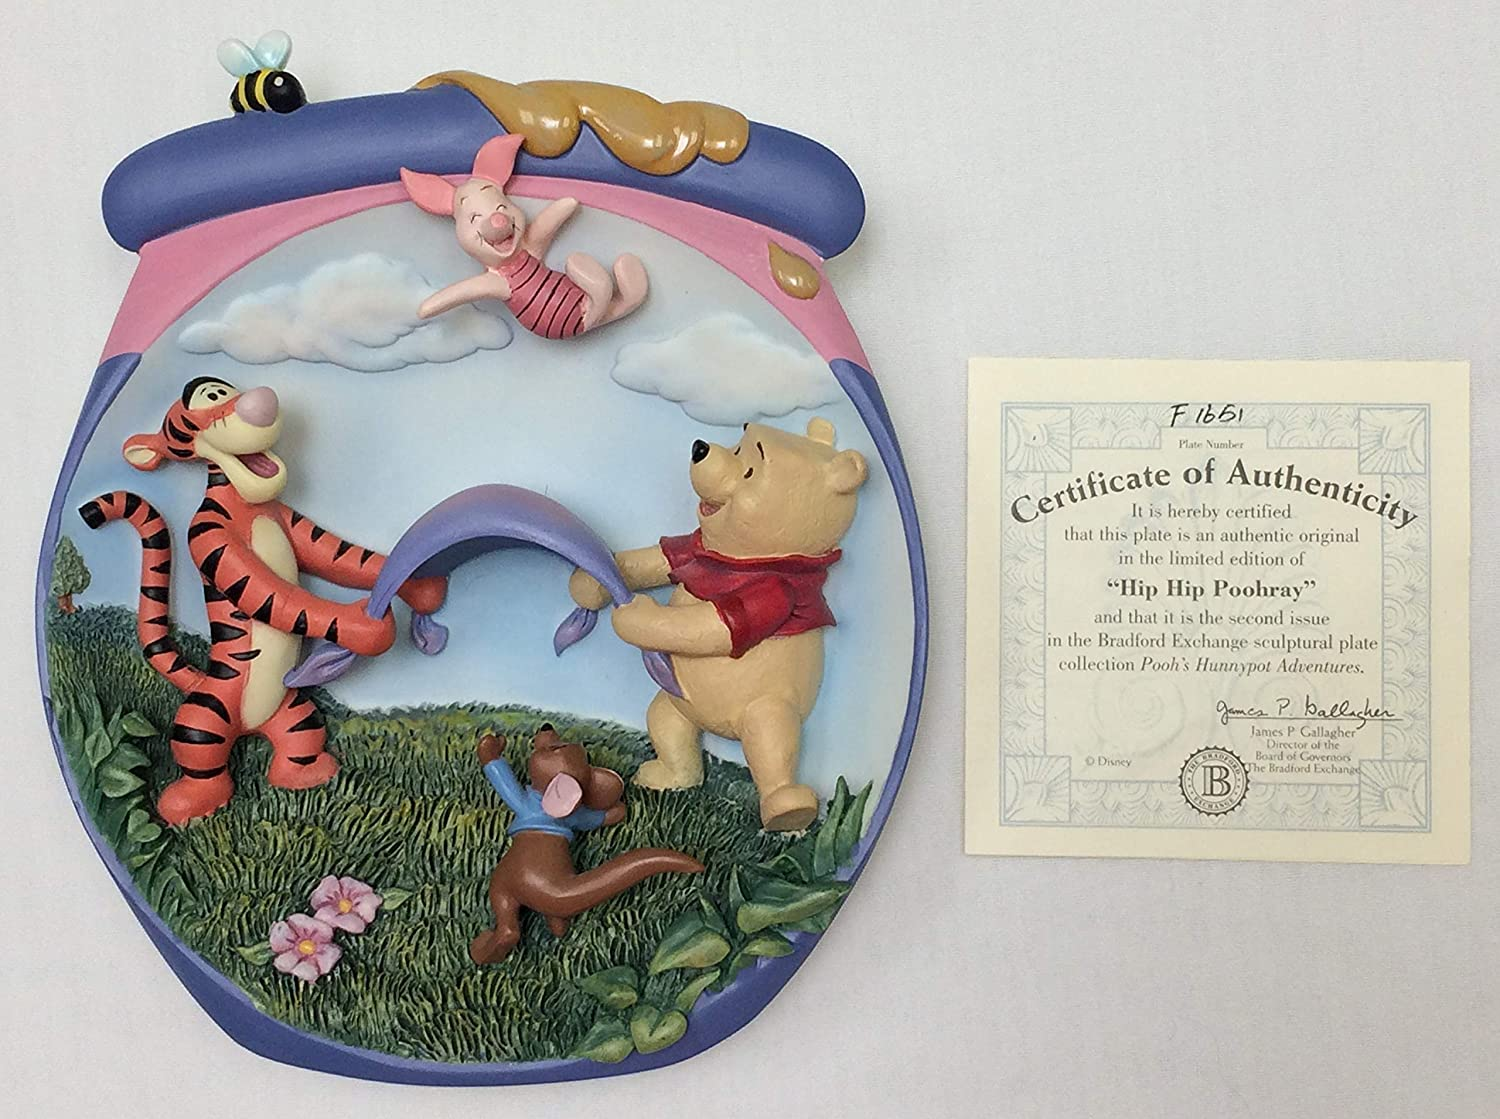 Amazon.com: Winnie the Poohs Hunnypot Adventures 1st Issue Limited Edition 7